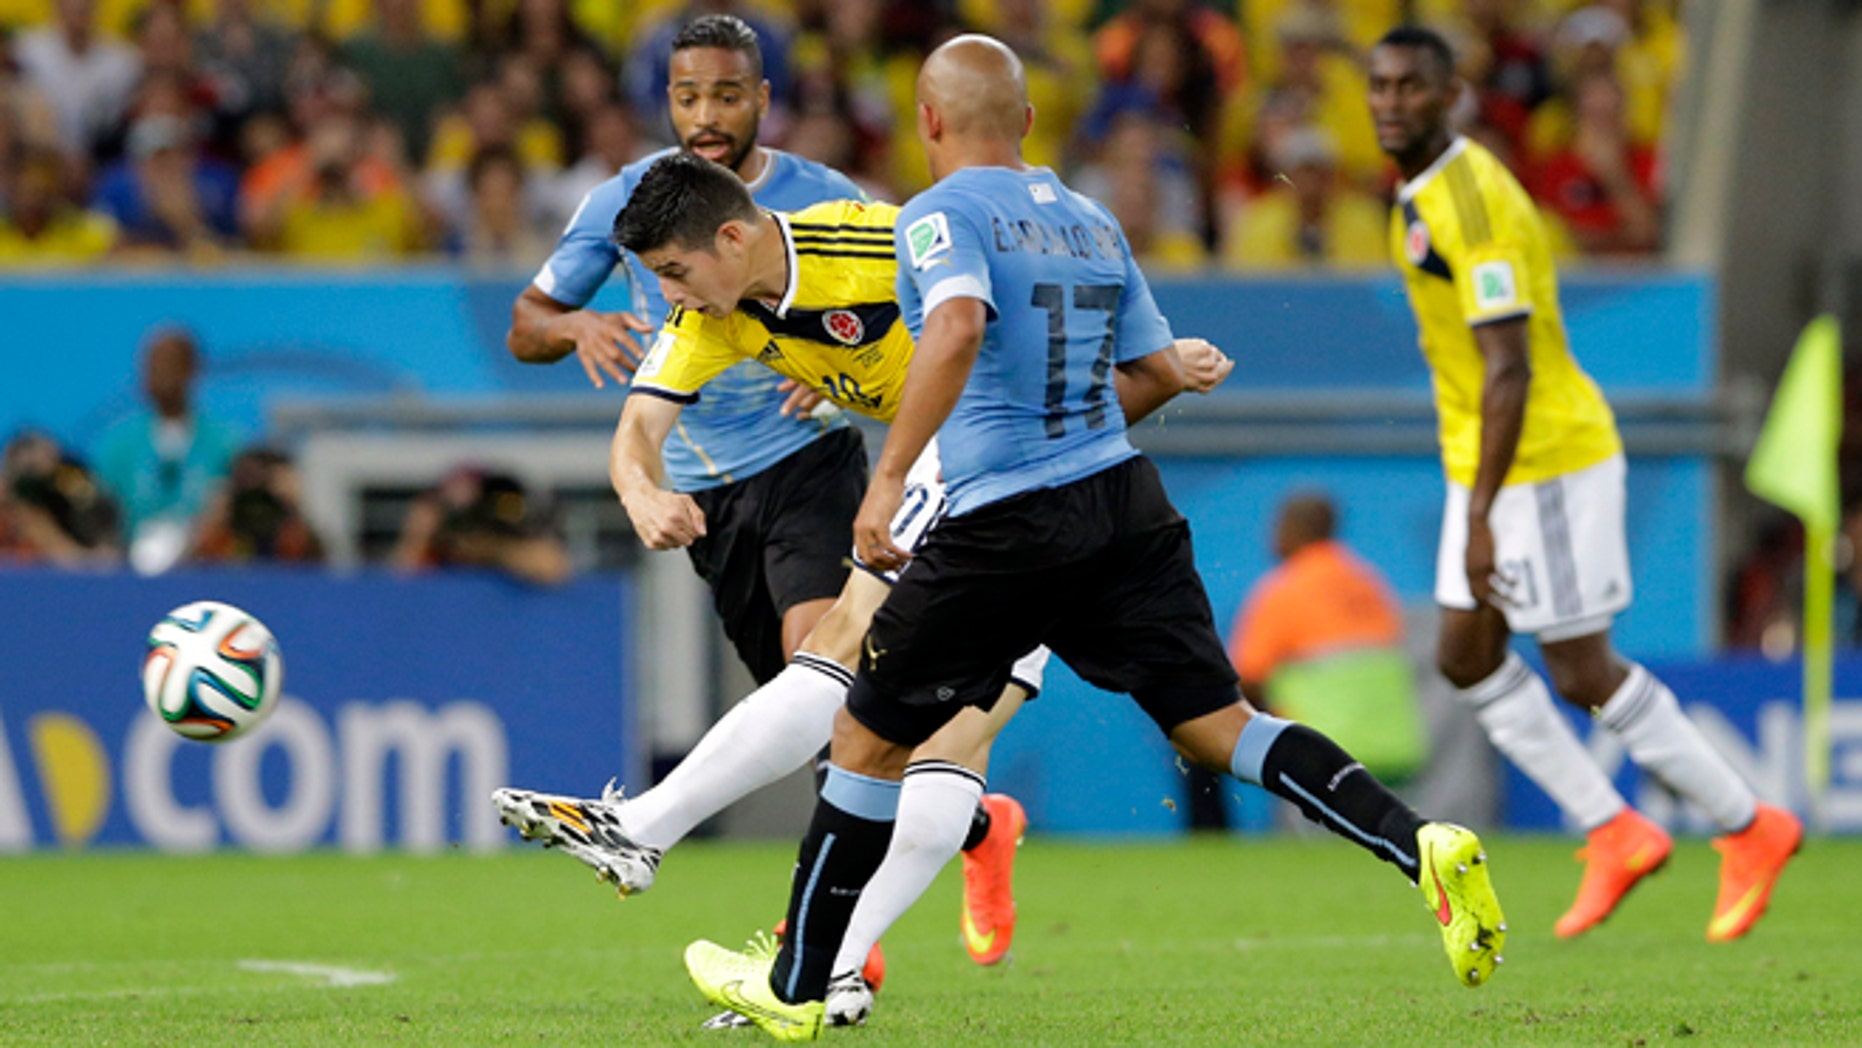 James Rodriguez shoots to score his team's first goal during the World Cup, on June 28, 2014.